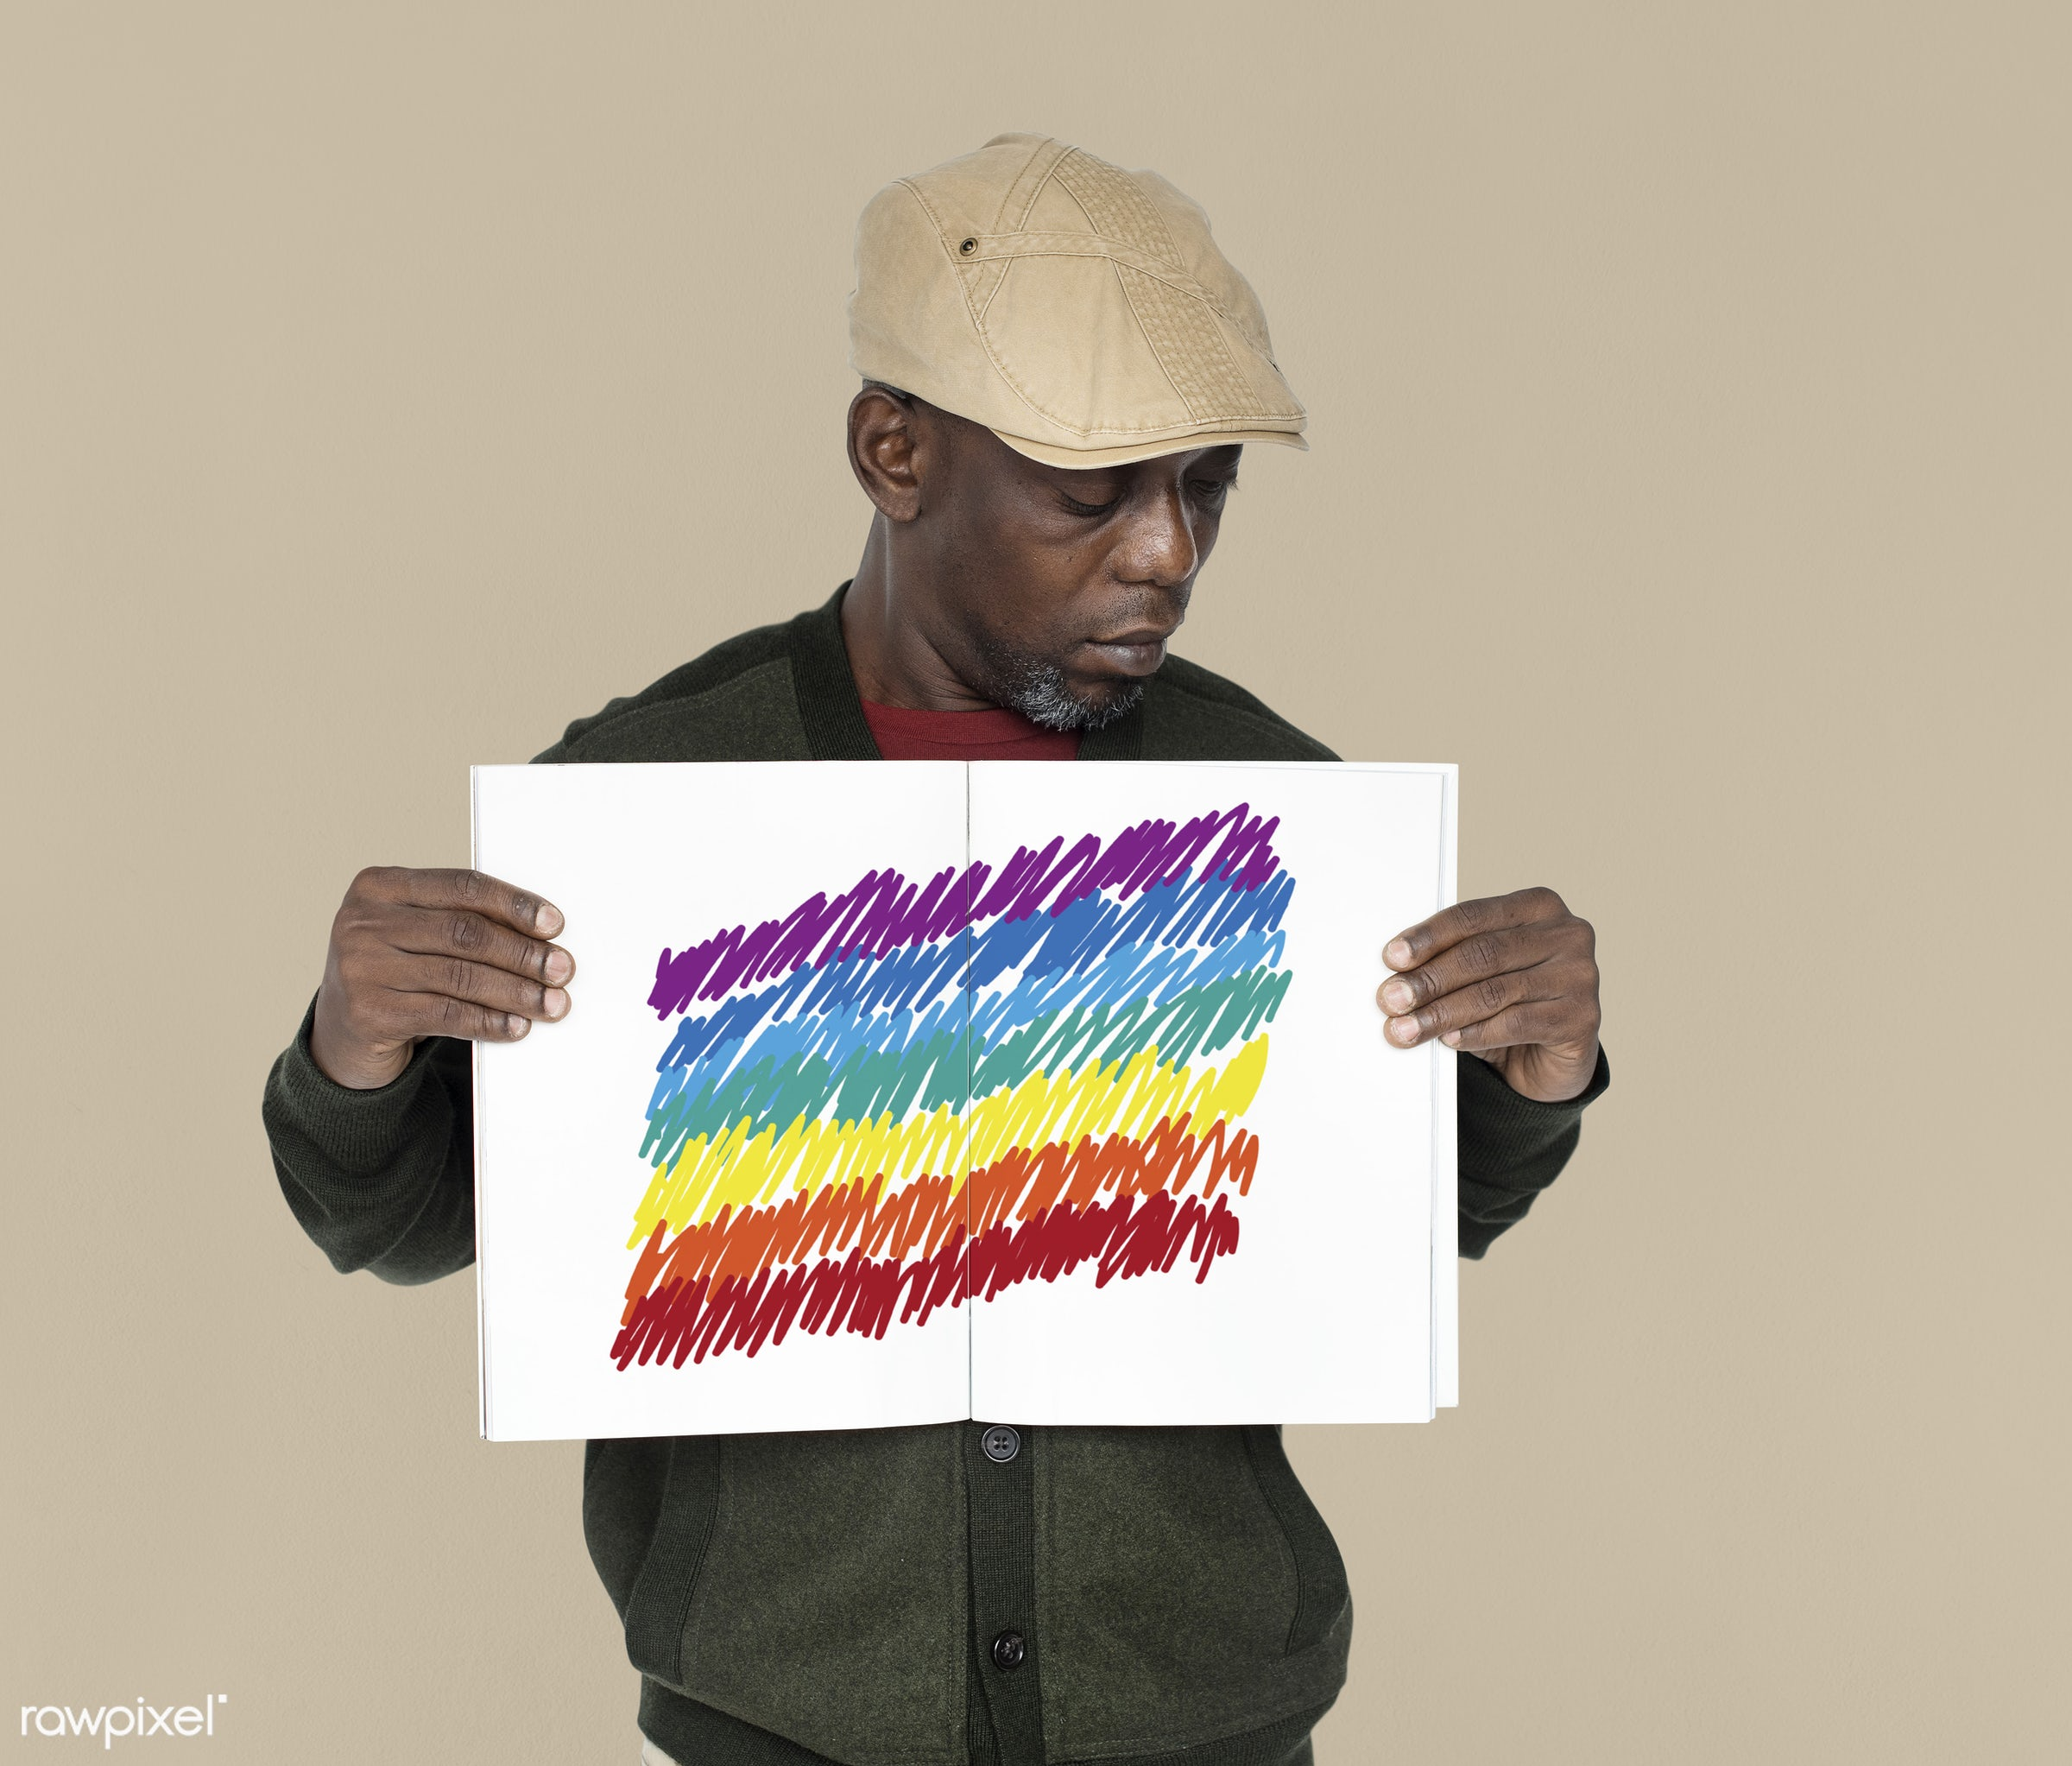 studio, expression, person, emblem, holding, people, pride, placard, empty, gender, black, isolated, symbol, african descent...